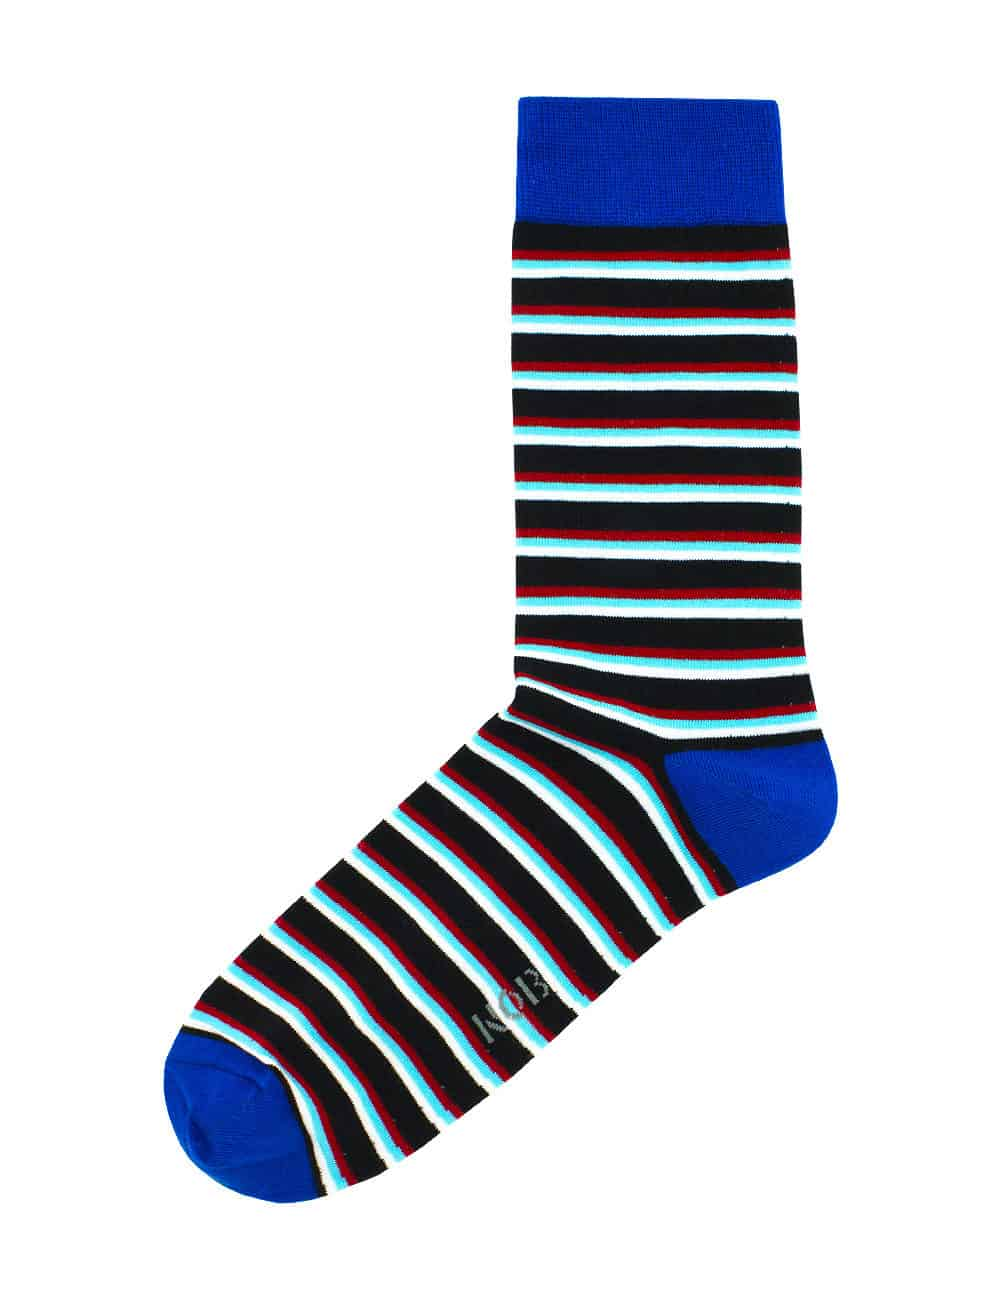 NAVY WITH RED, TURQUOISE AND WHITE STRIPES CREW SOCKS SOC4A.NOB1